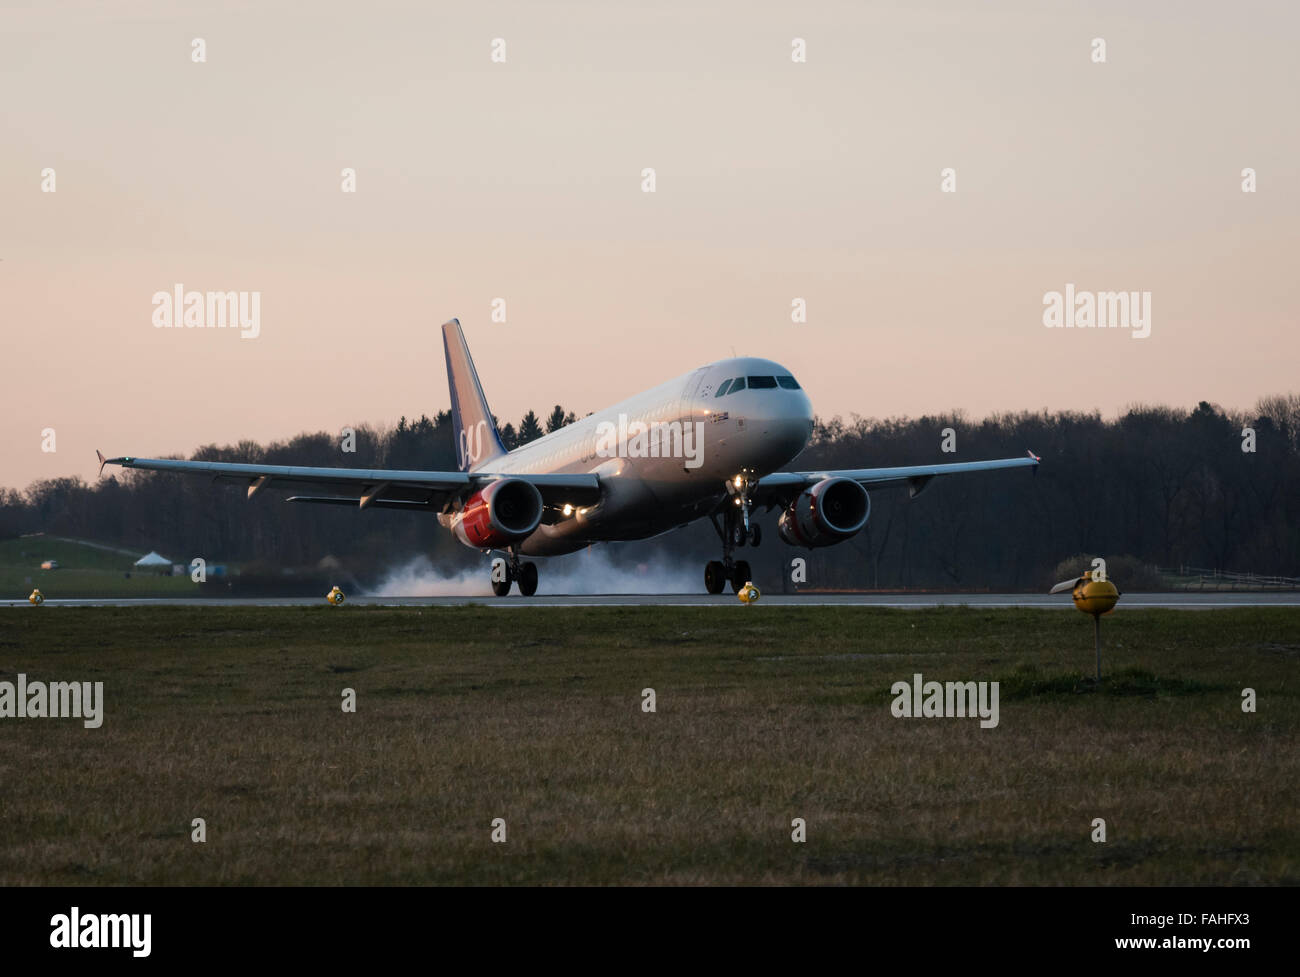 Smoke from burnt rubber is raising from the tires of an Airbus passenger aircraft right after touchdown at Zurich - Stock Image